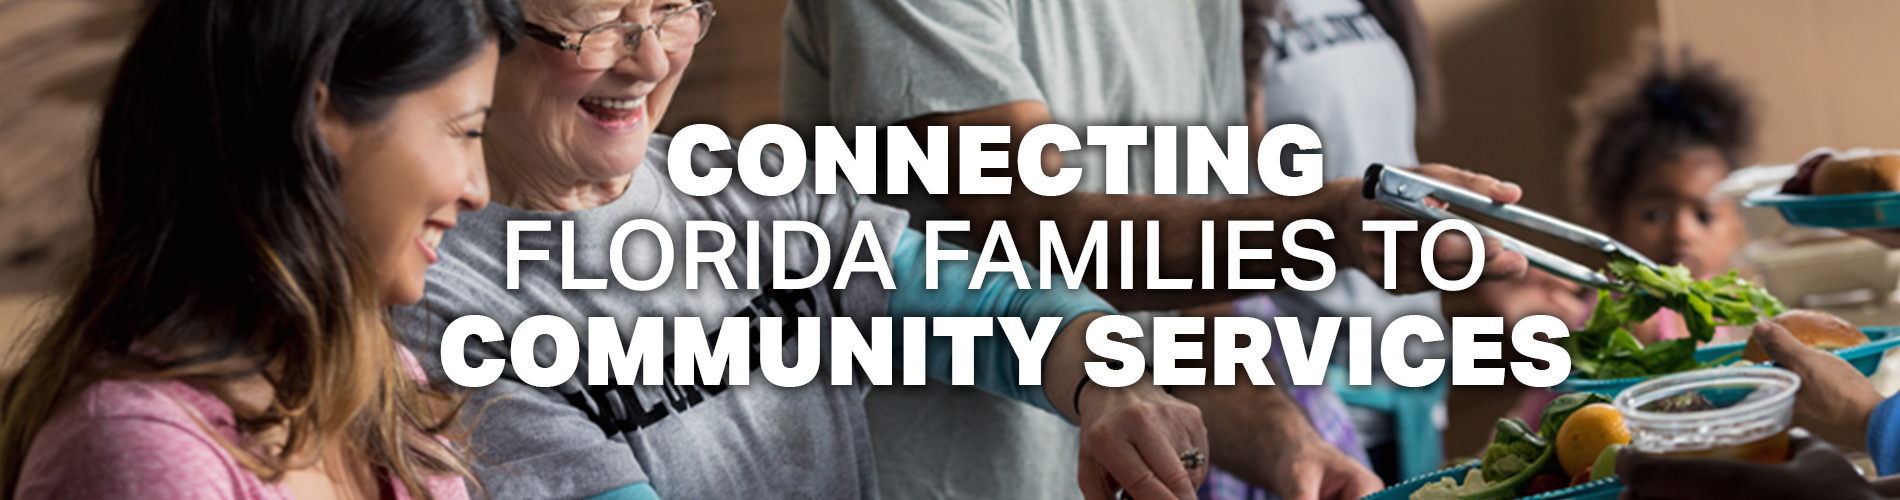 Connecting Florida Families to Community Services.  Image of a family serving food.